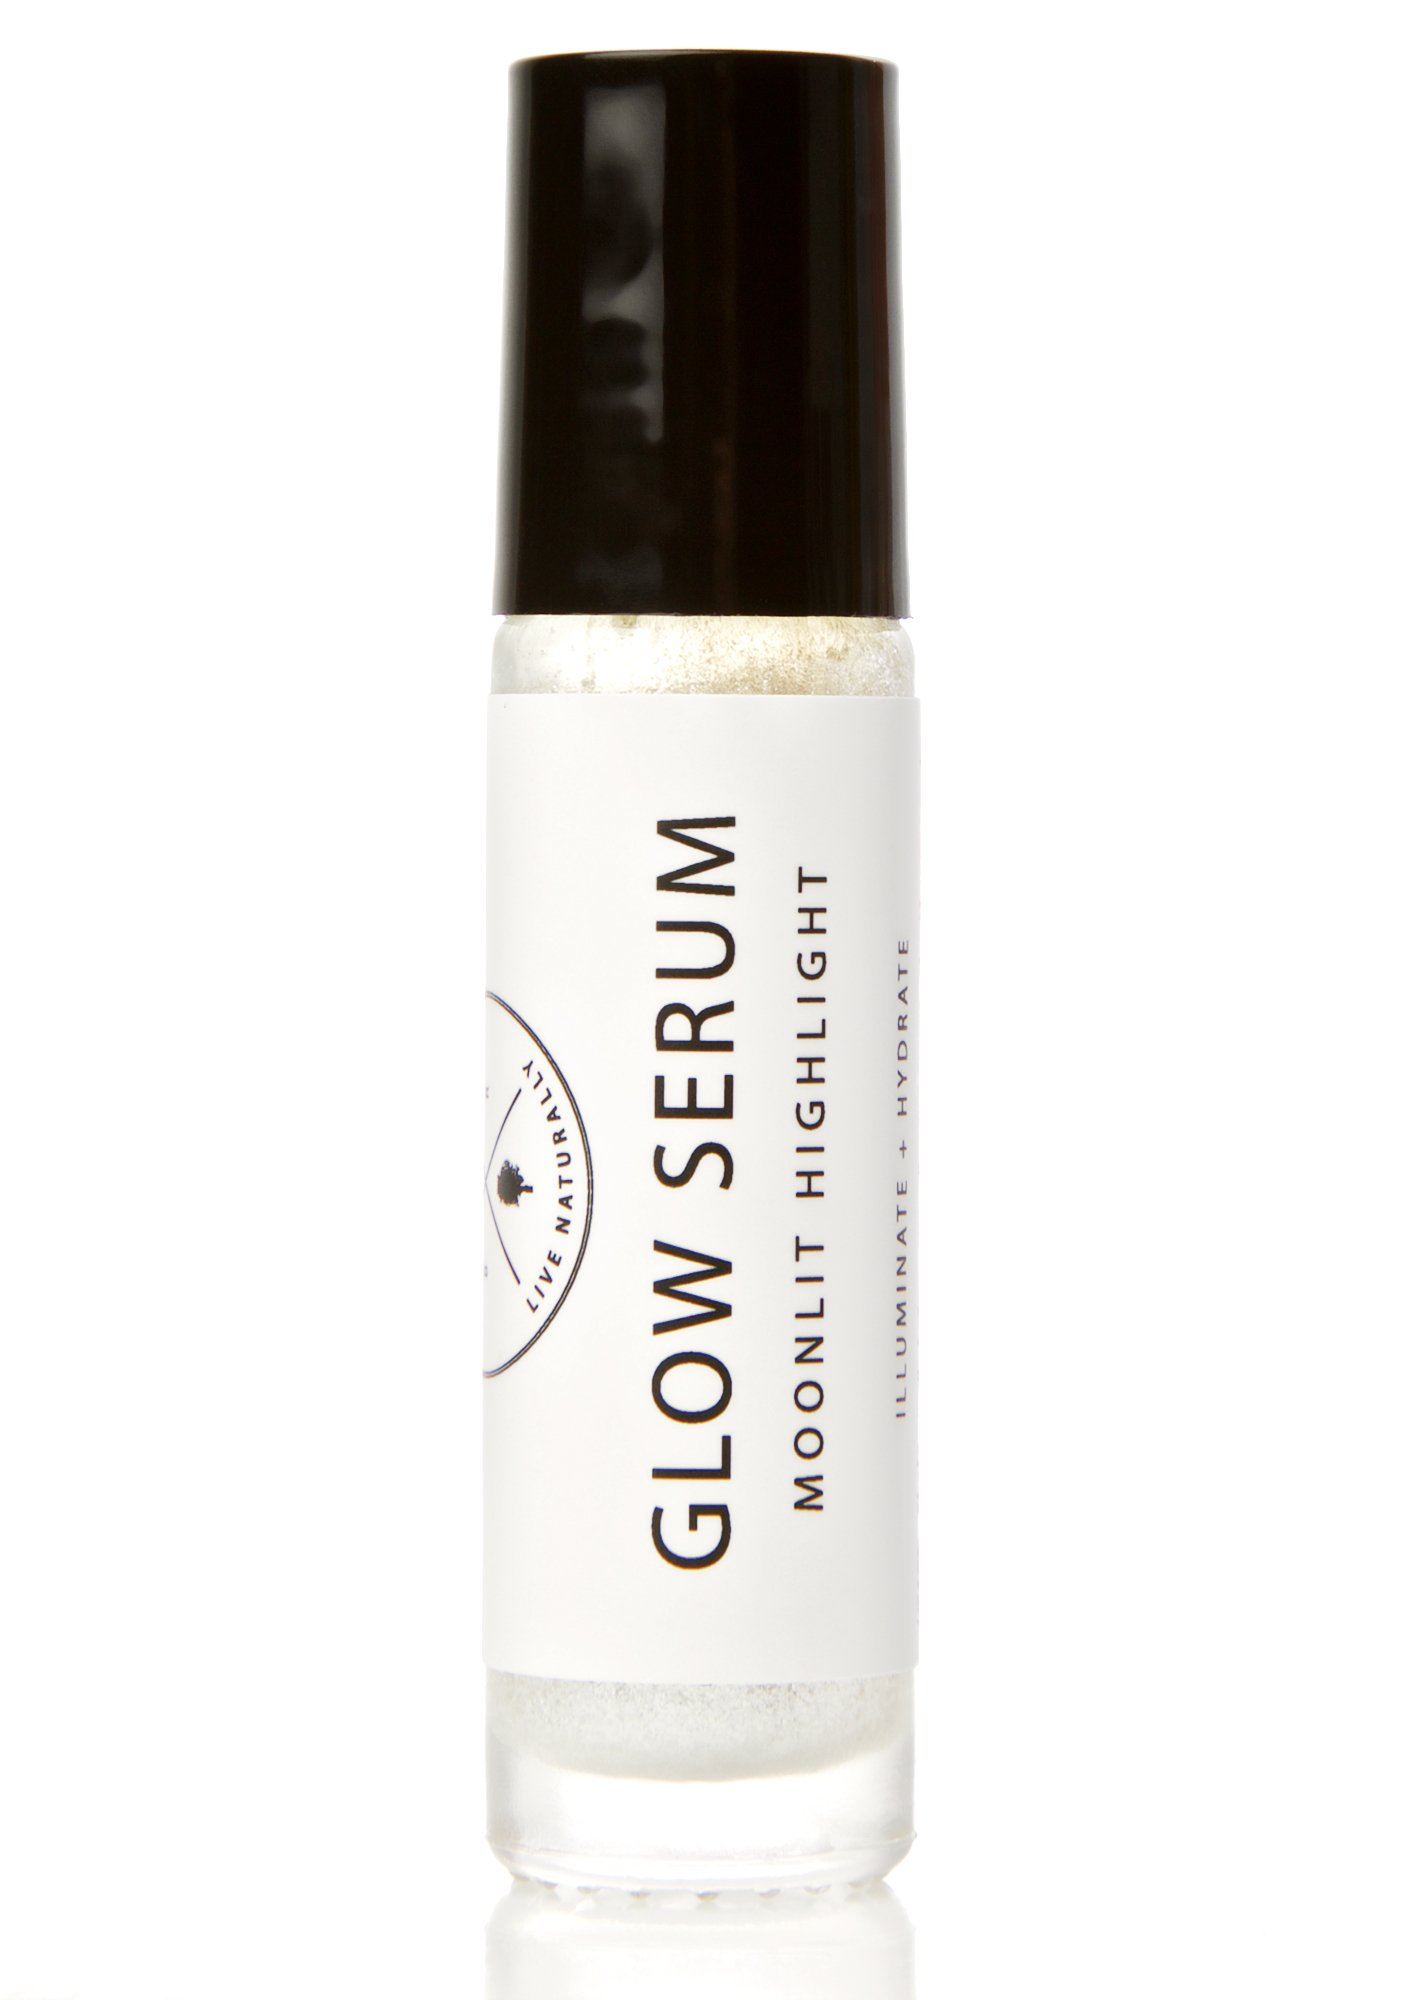 Birchrose + Co Moonlit Highlight Glow Serum